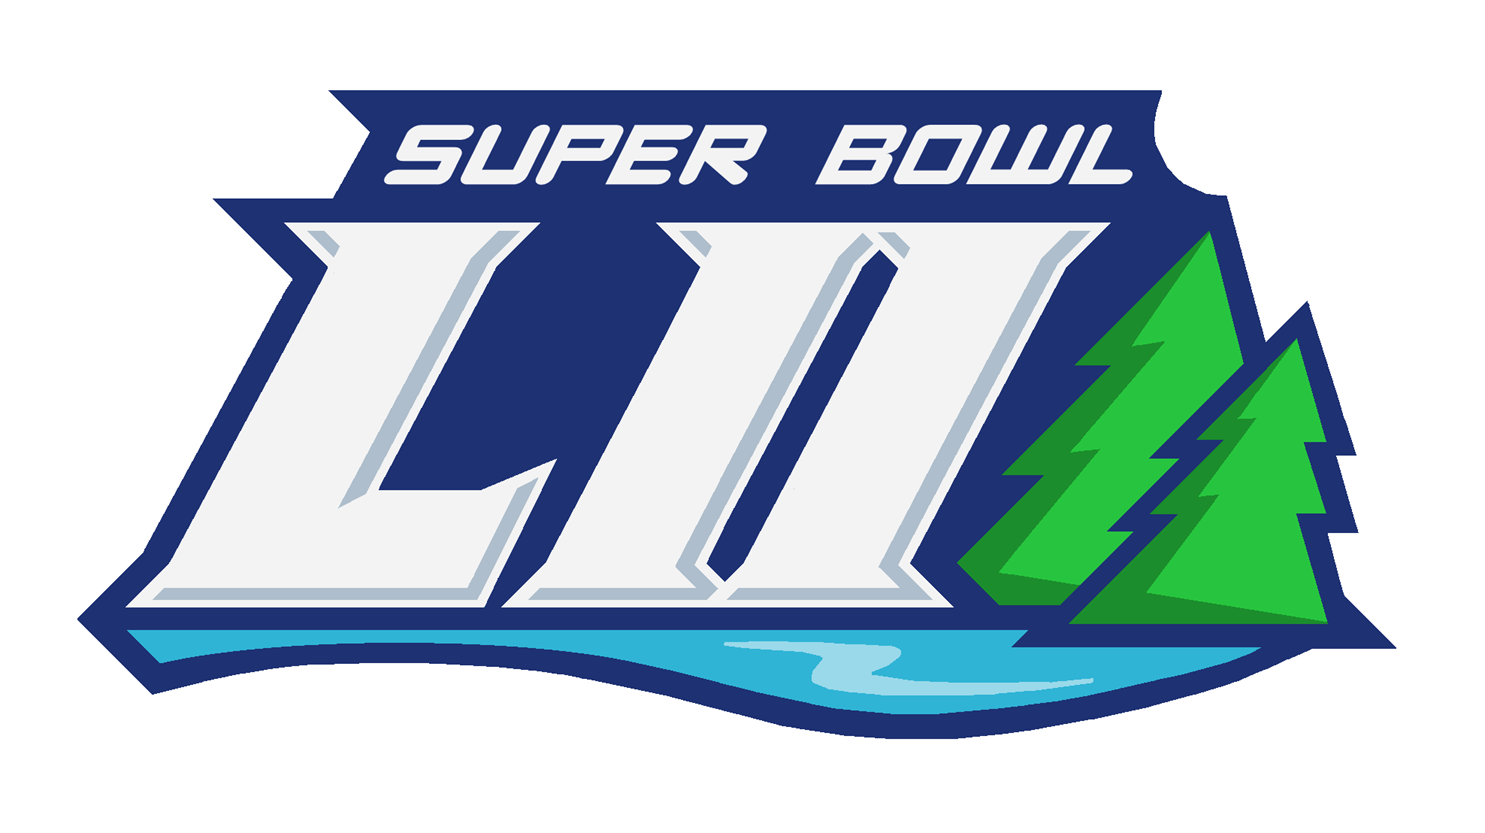 Super bowl 2008 clipart 6 » Clipart Portal.